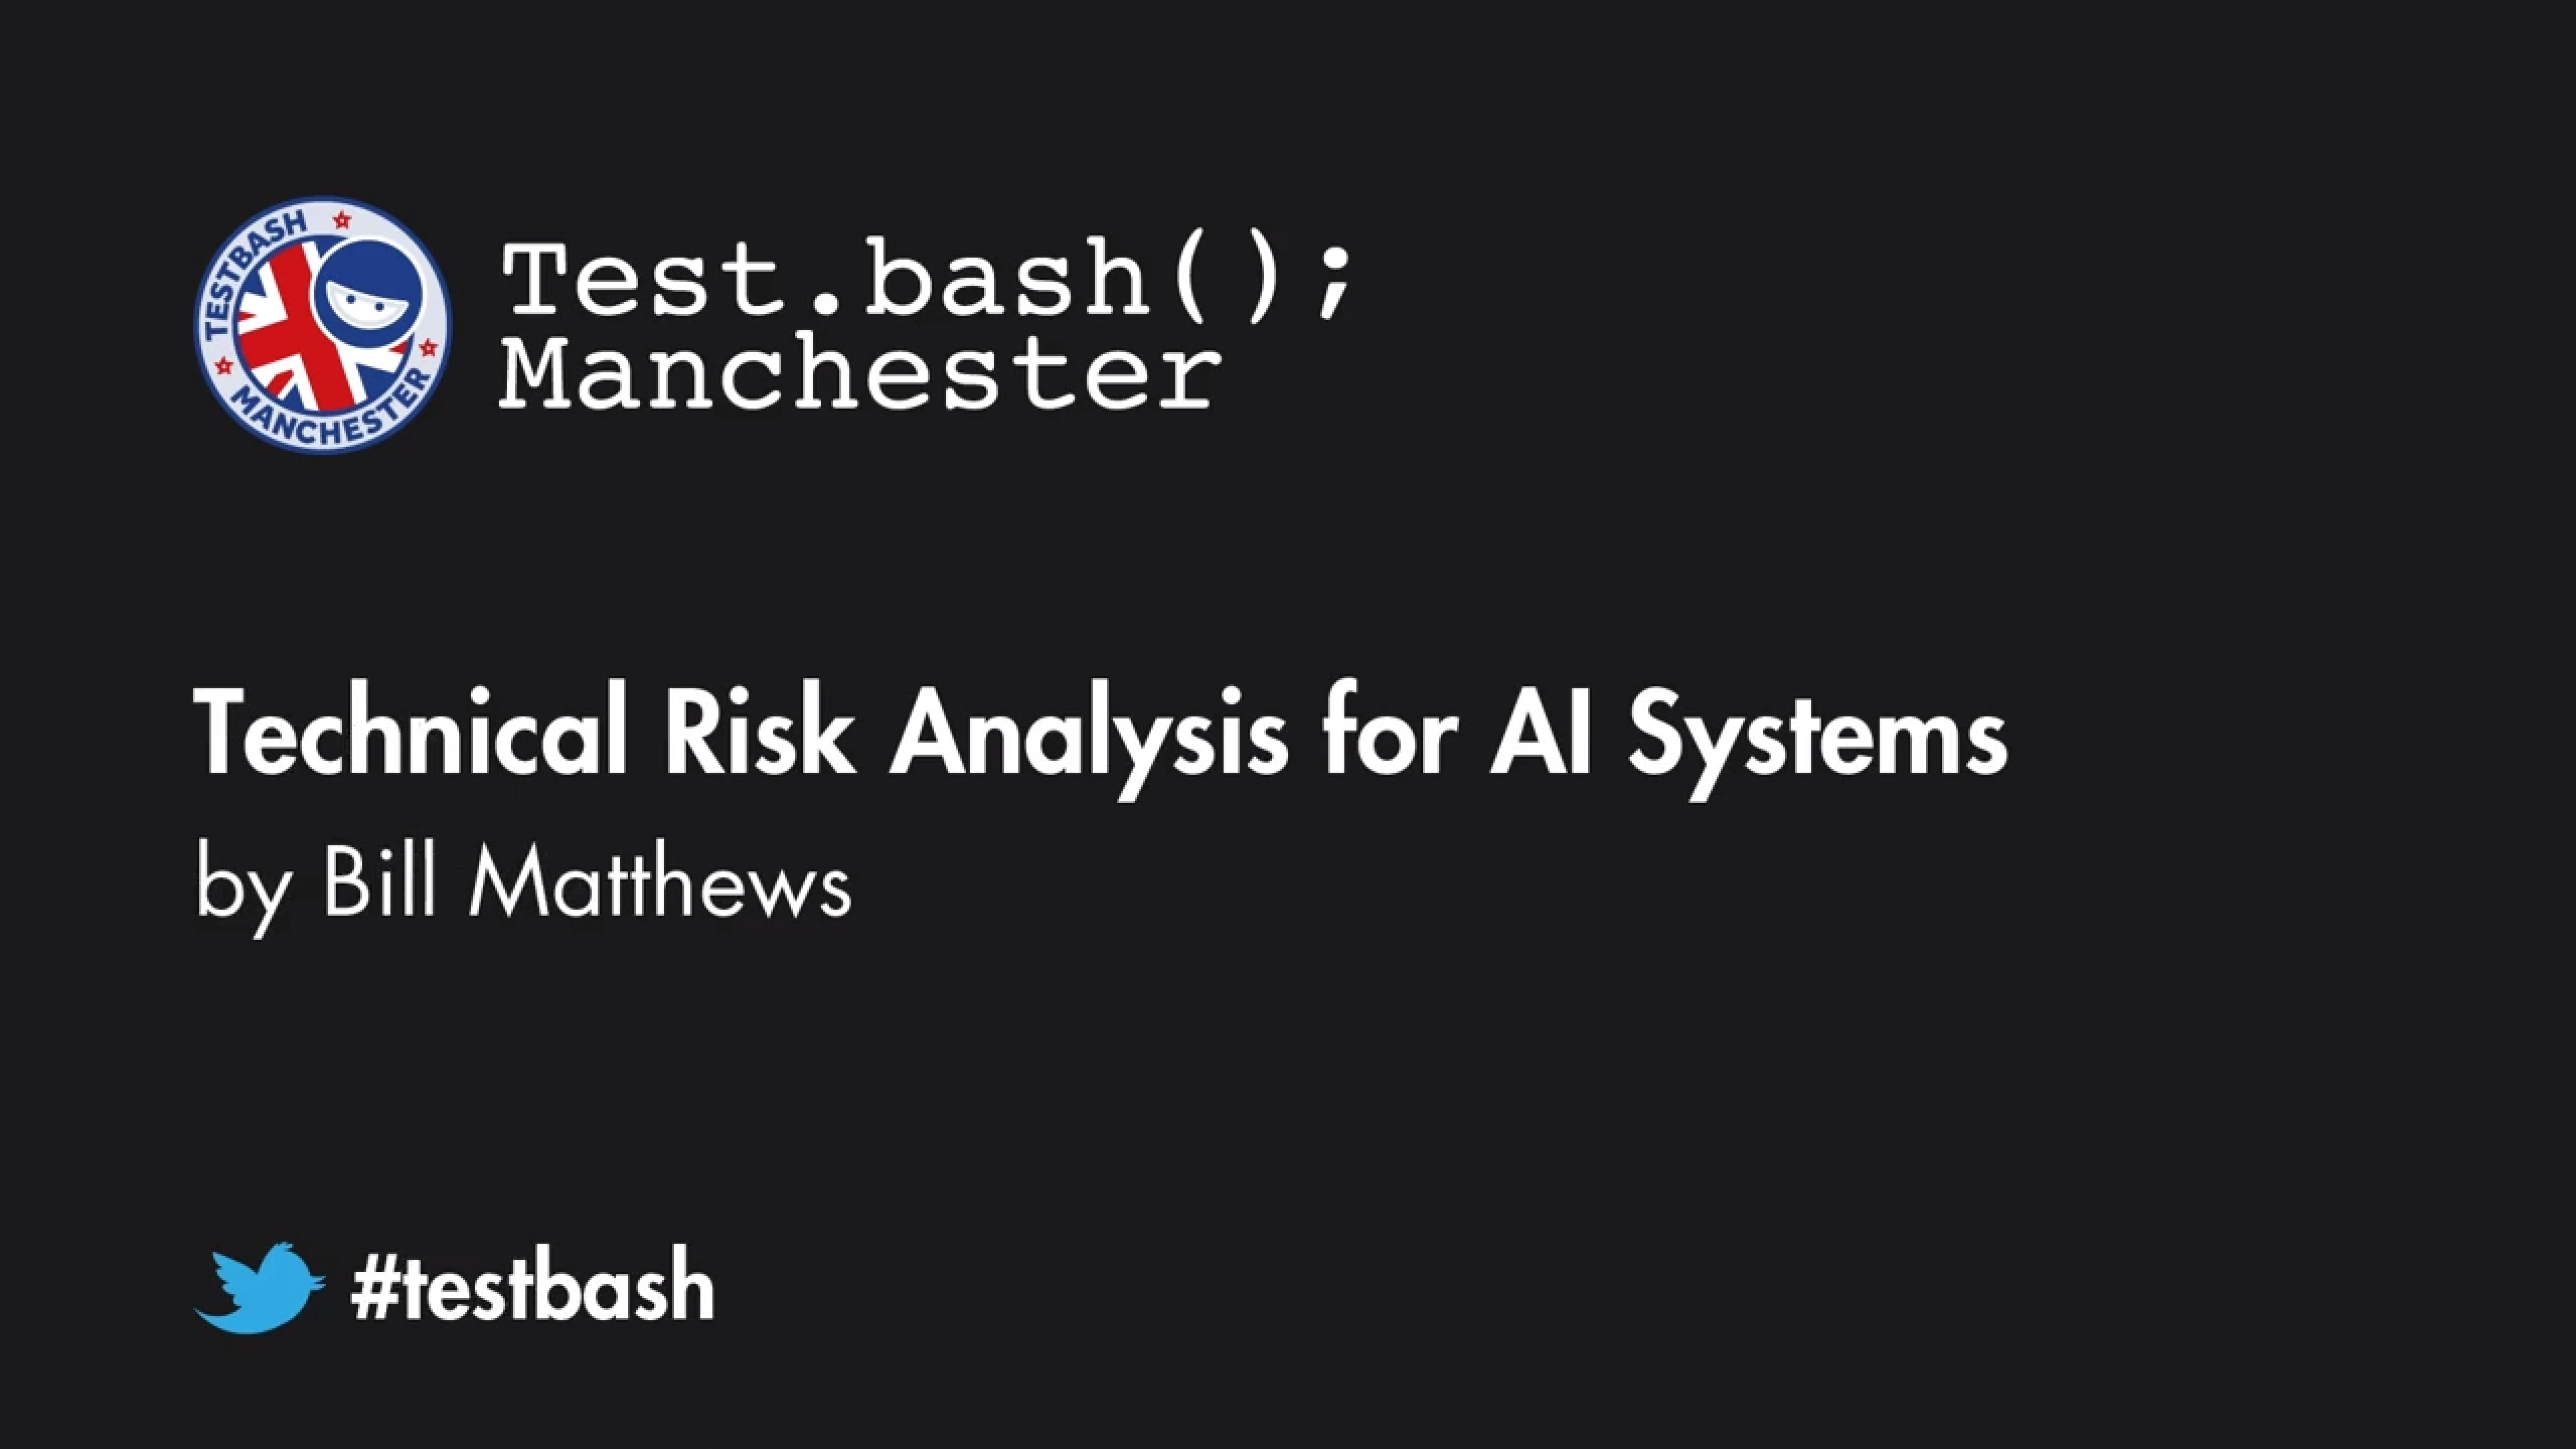 Technical Risk Analysis for AI Systems - Bill Matthews